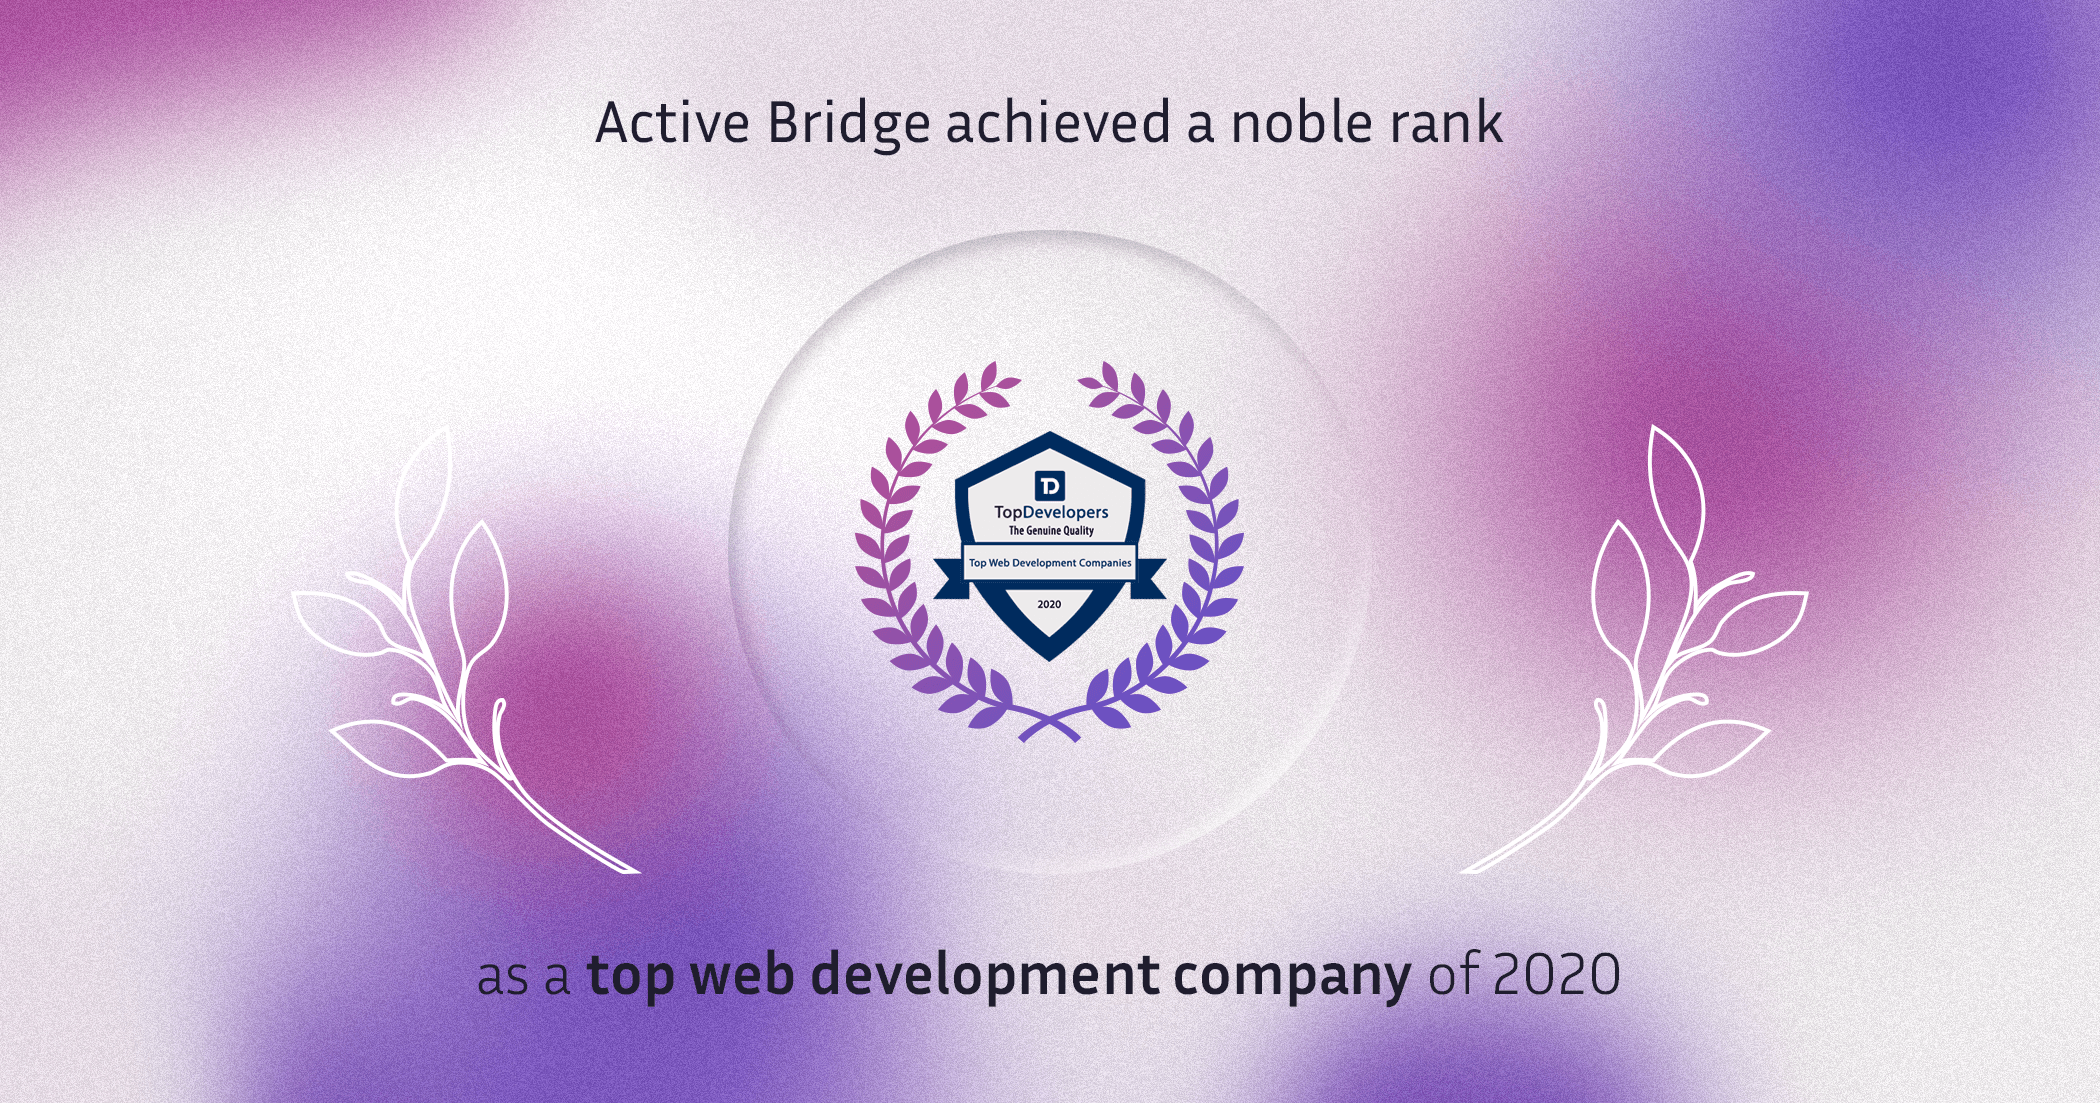 Active Bridge listed as TOP web development company